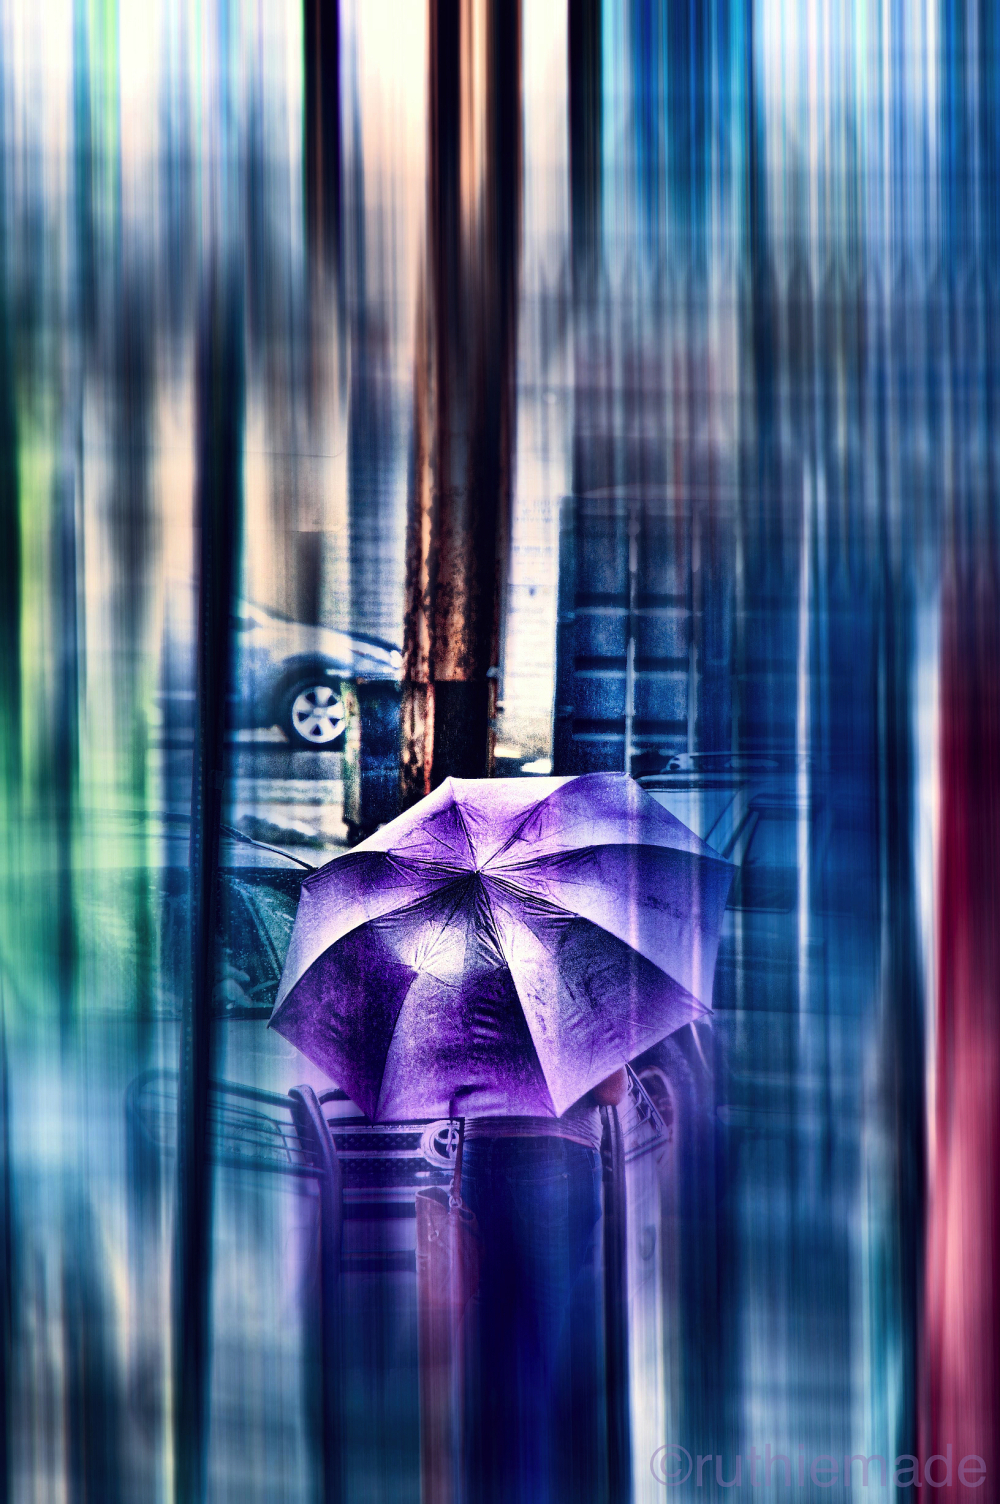 Umbrella in rainy NYC